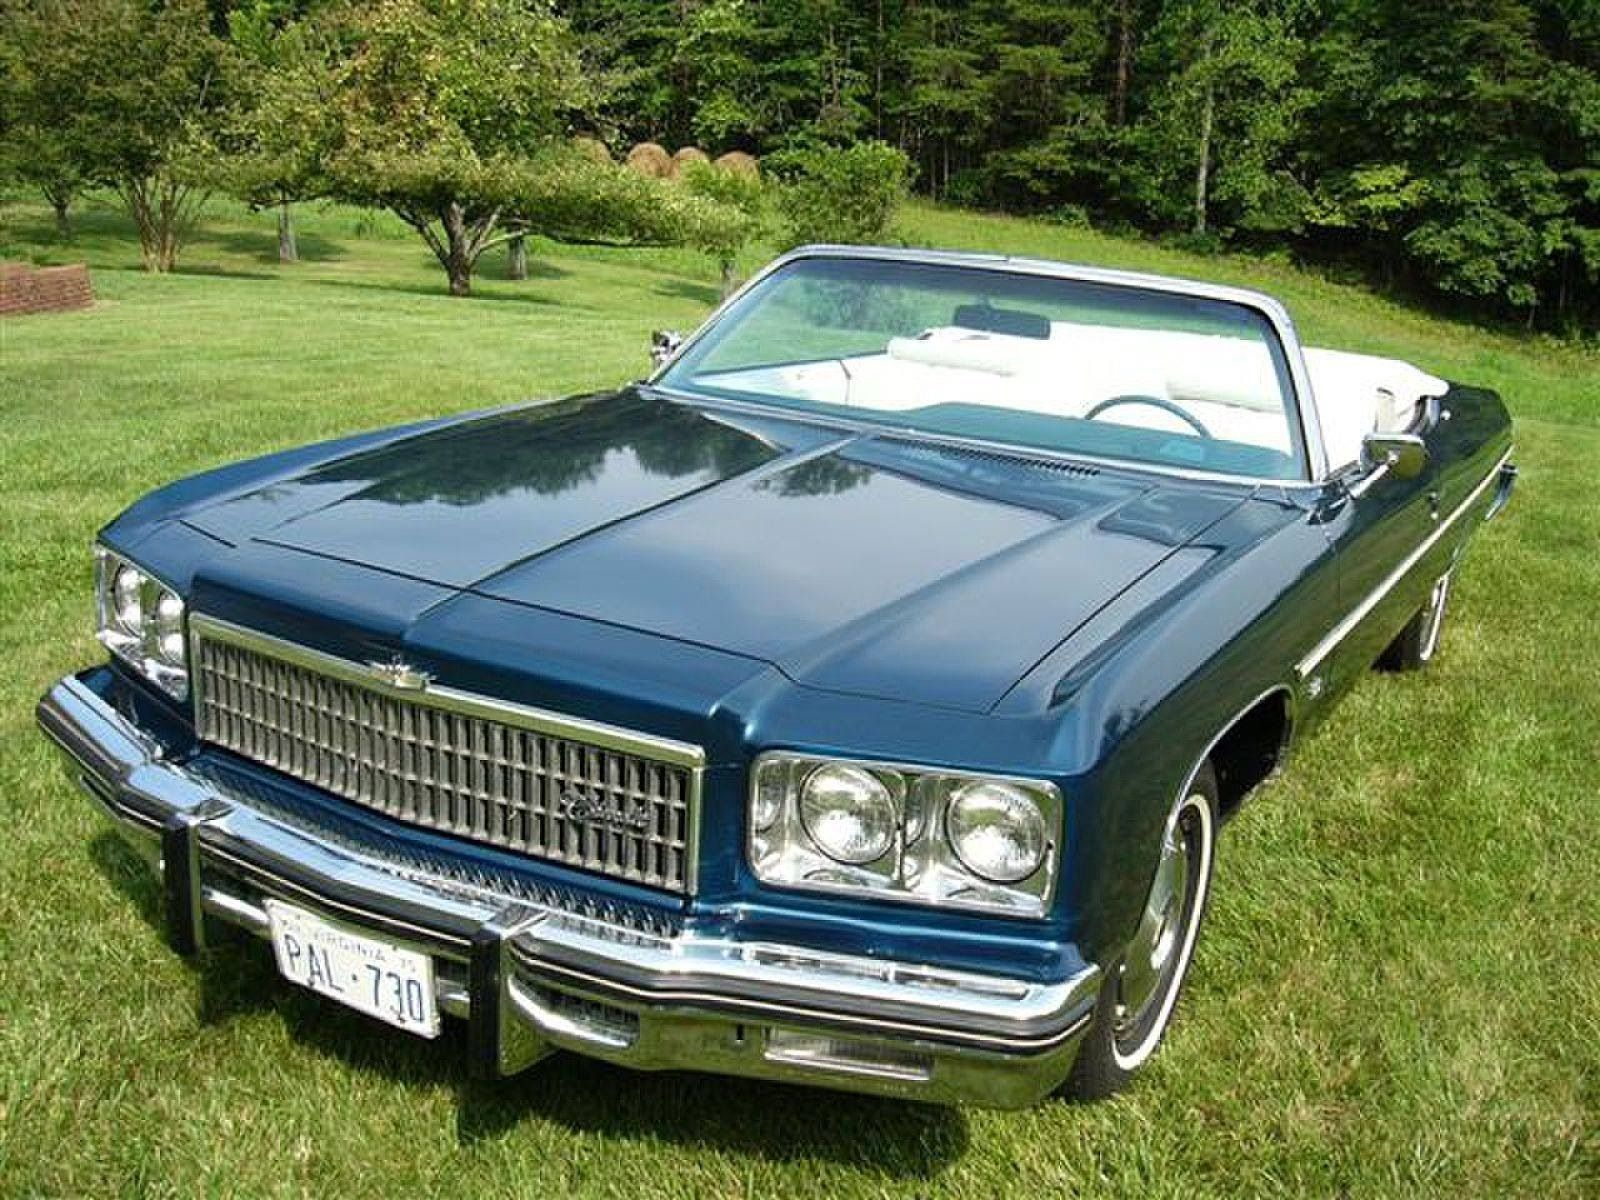 Ride a 1975 caprice named dino i miss that car